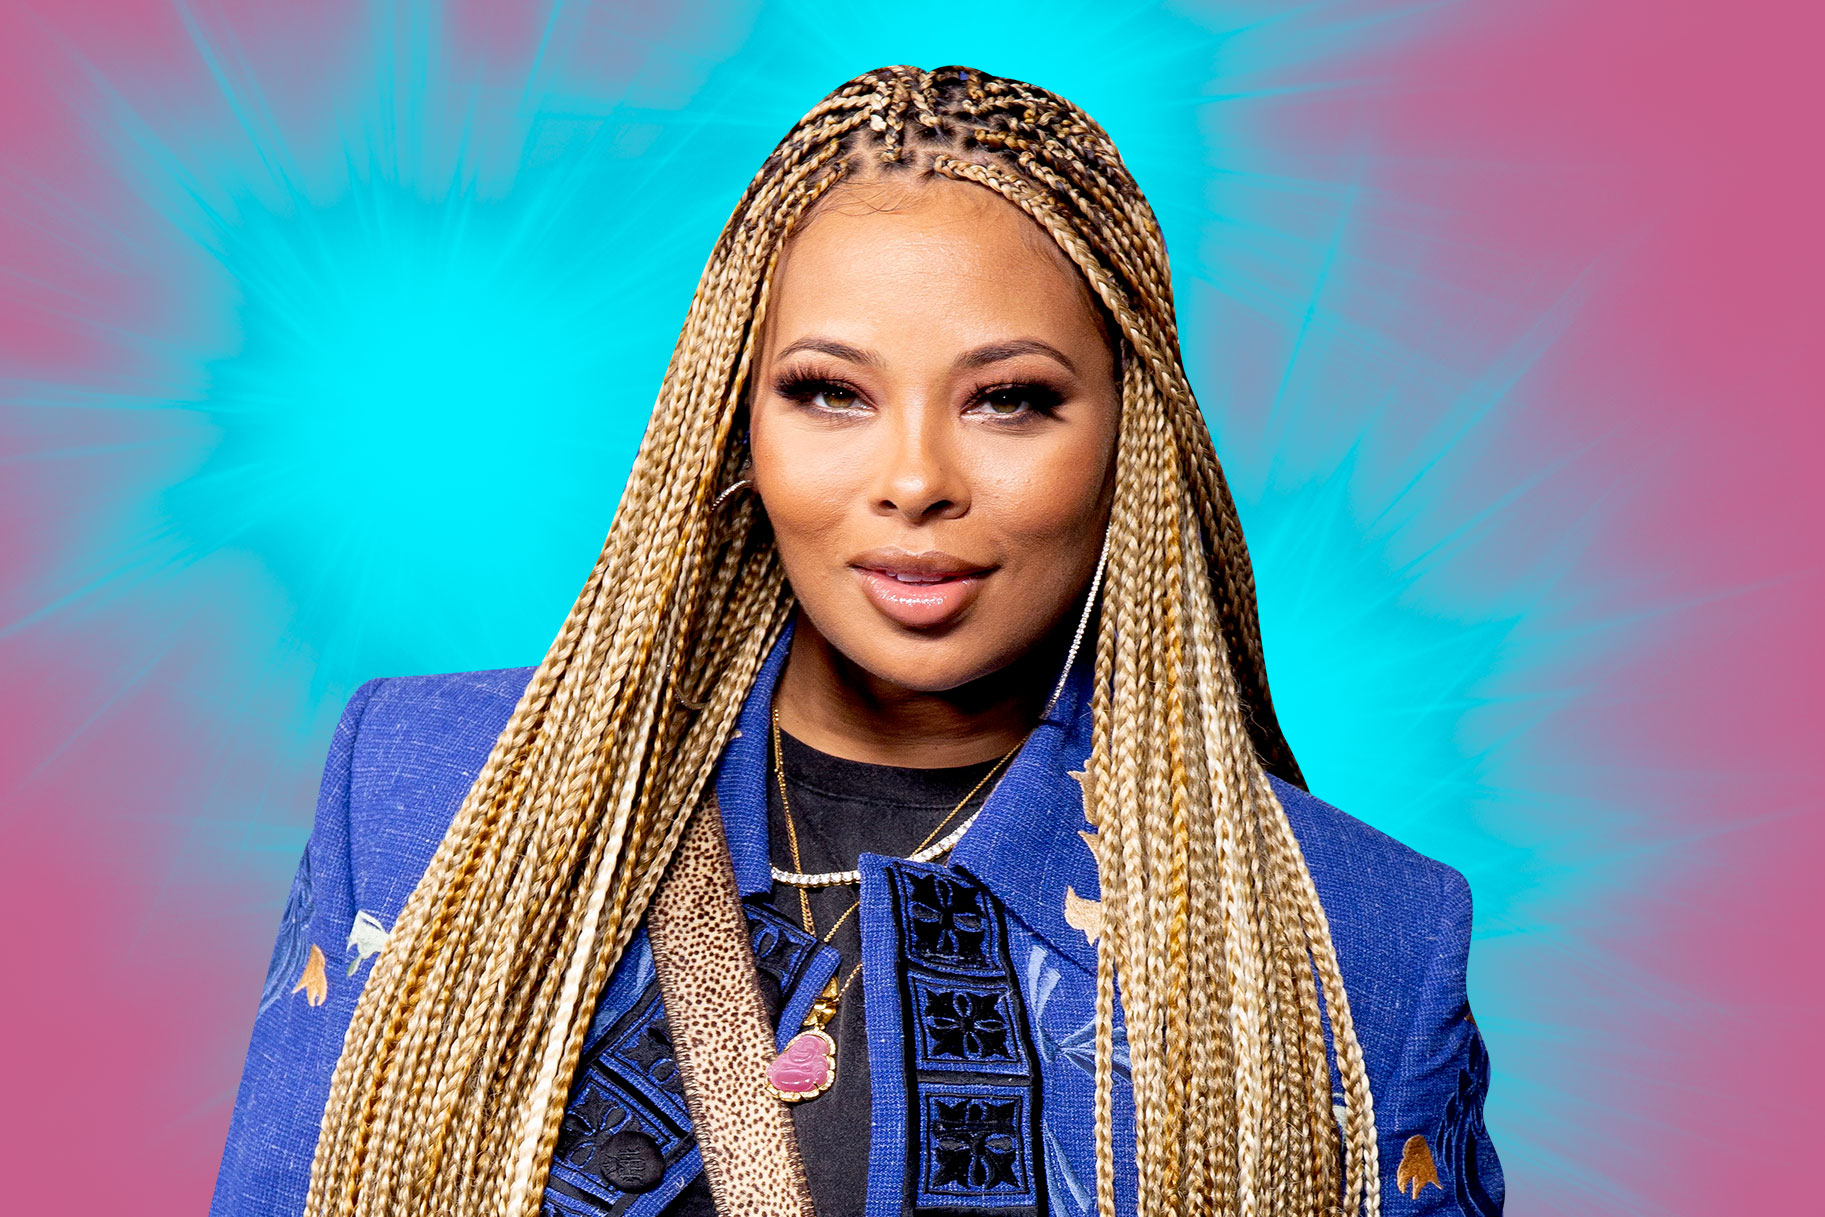 Eva Marcille Is Getting Ready For A Big Event - See Her Announcement